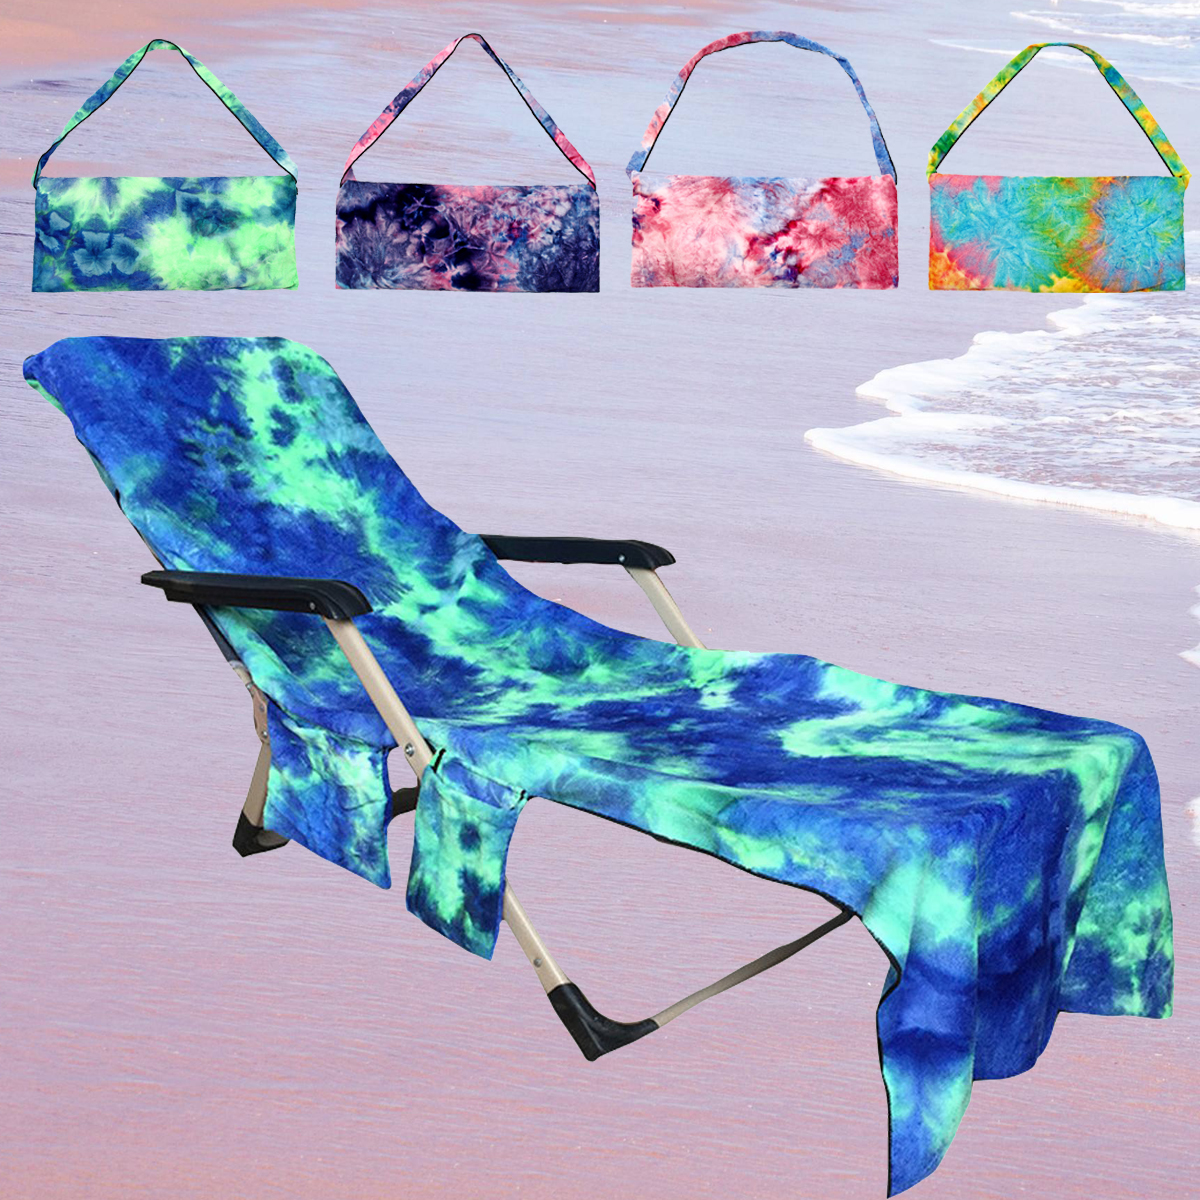 Moaere Portable Lounge Chair Beach Towel Microfiber Pool Lounge Chair Cover with Pocket for Holidays Sunbathing 83''x30''